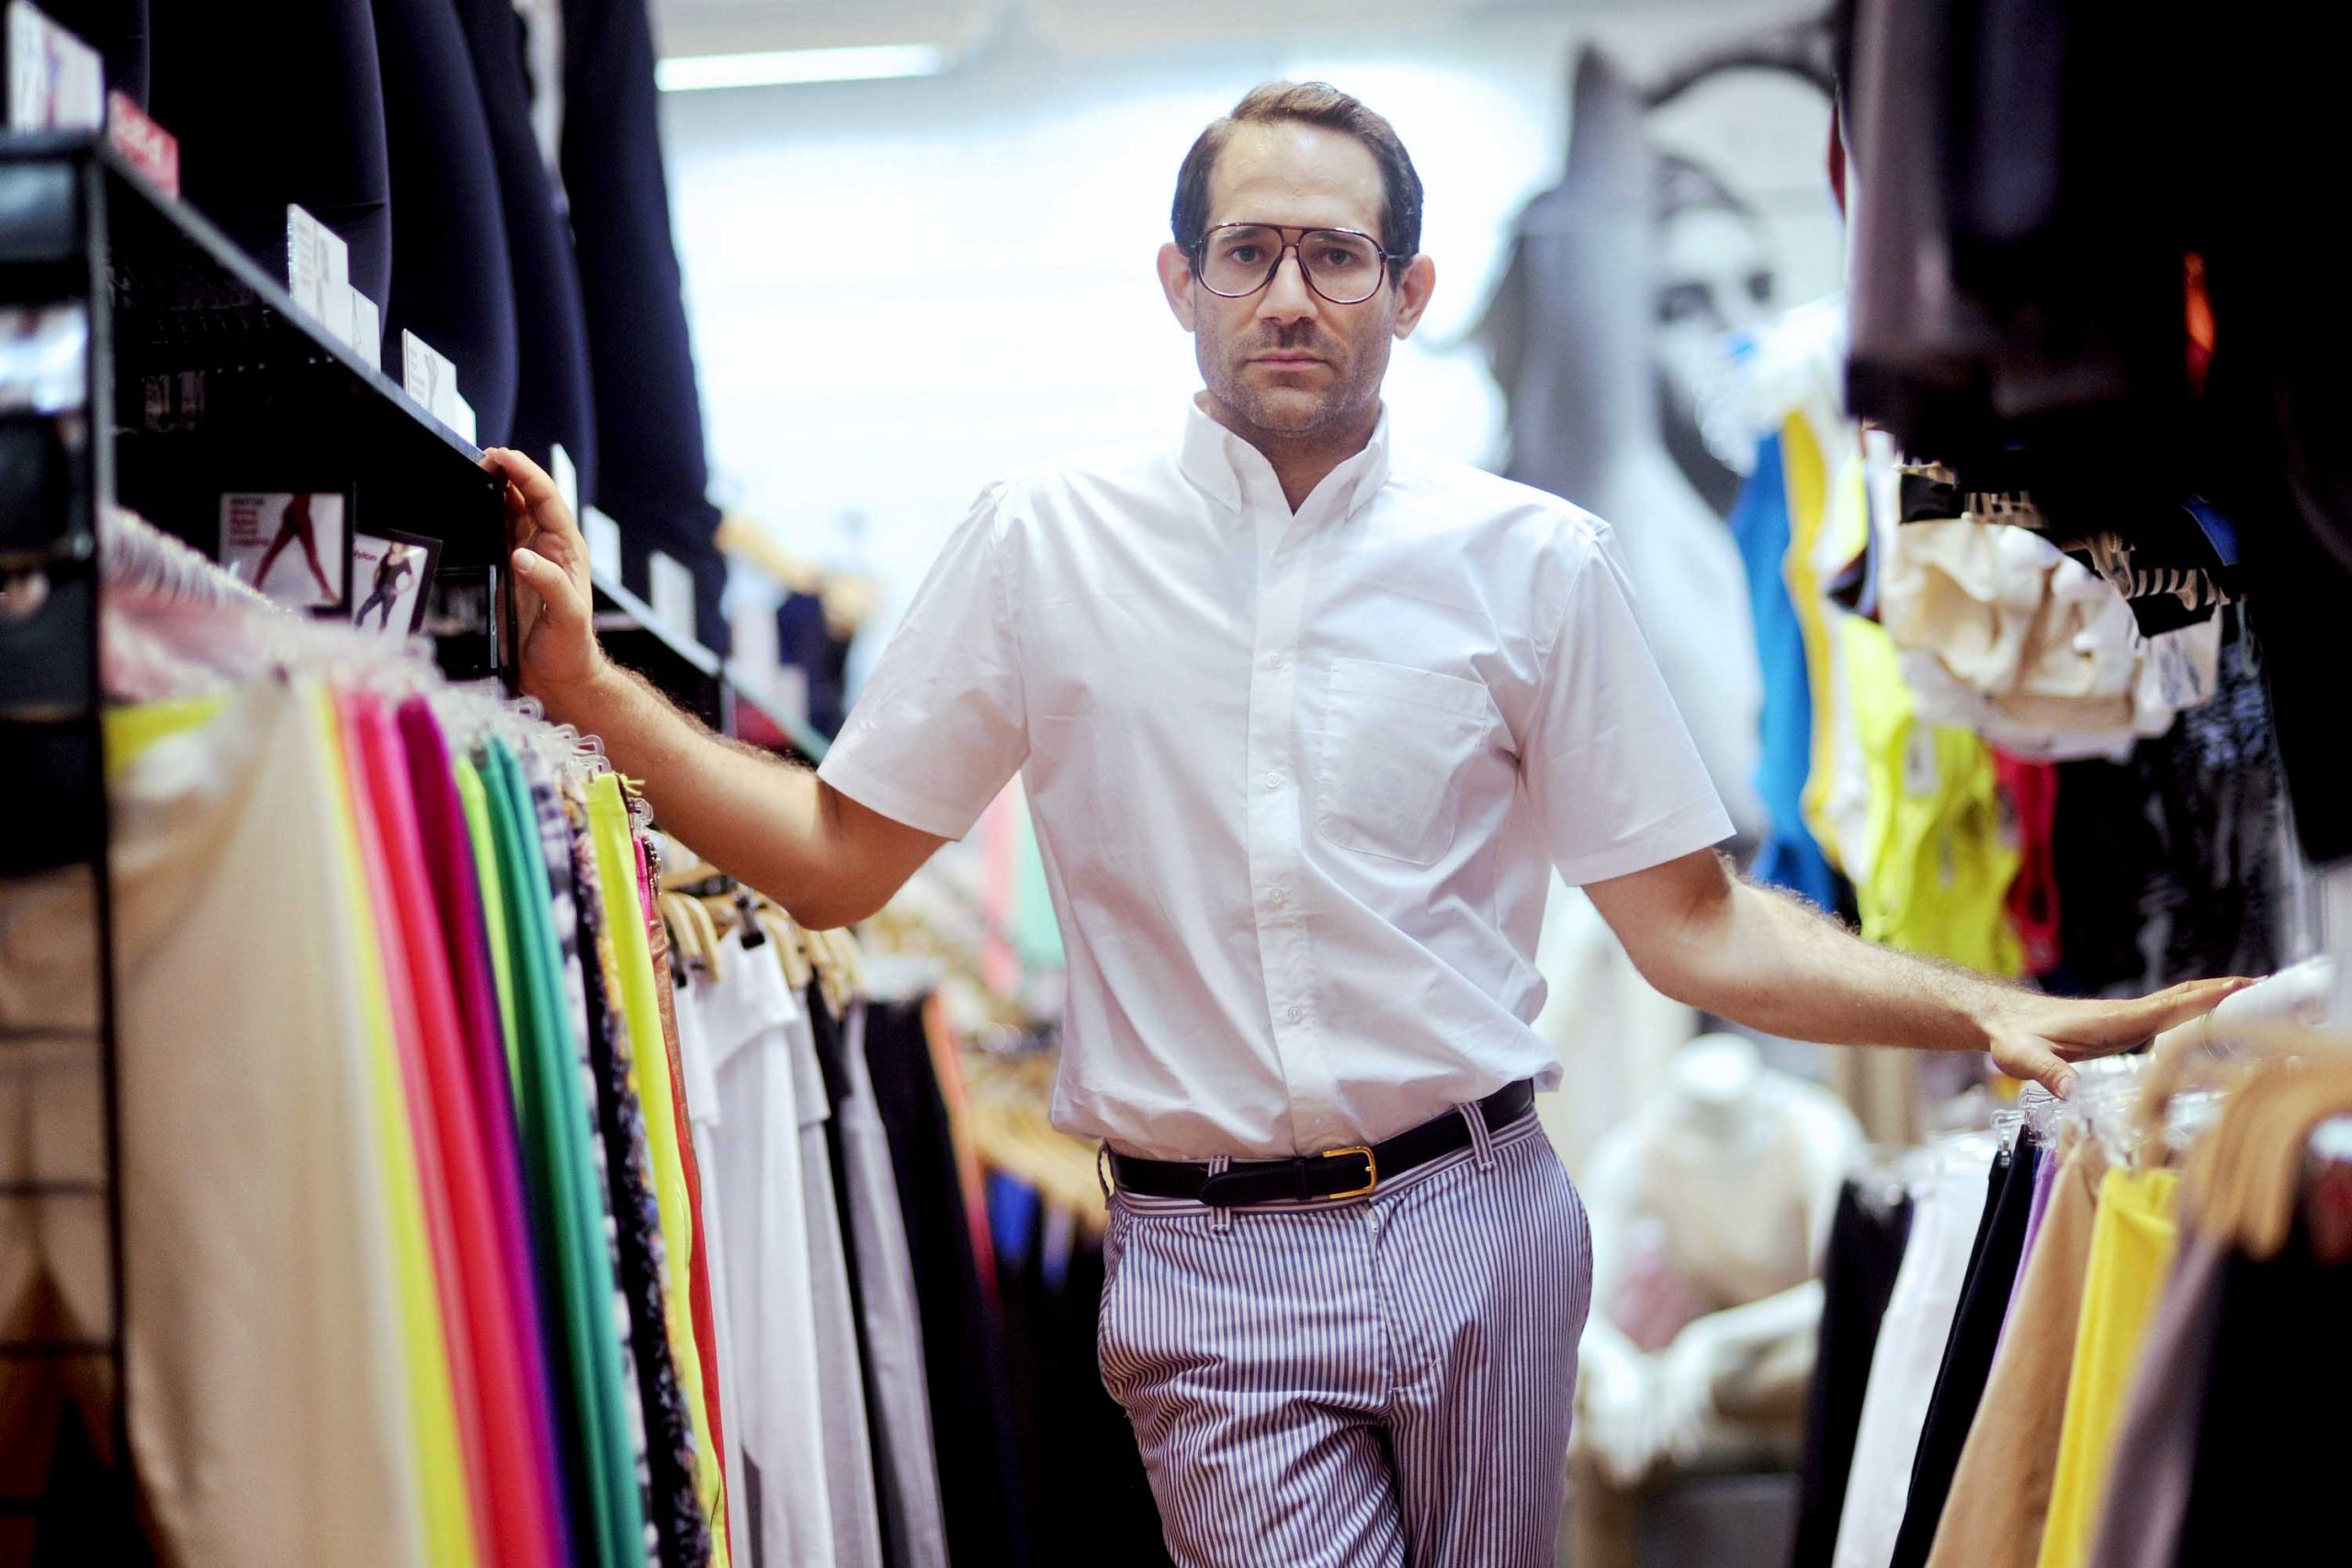 American Apparel Manufacture Company Selling Out